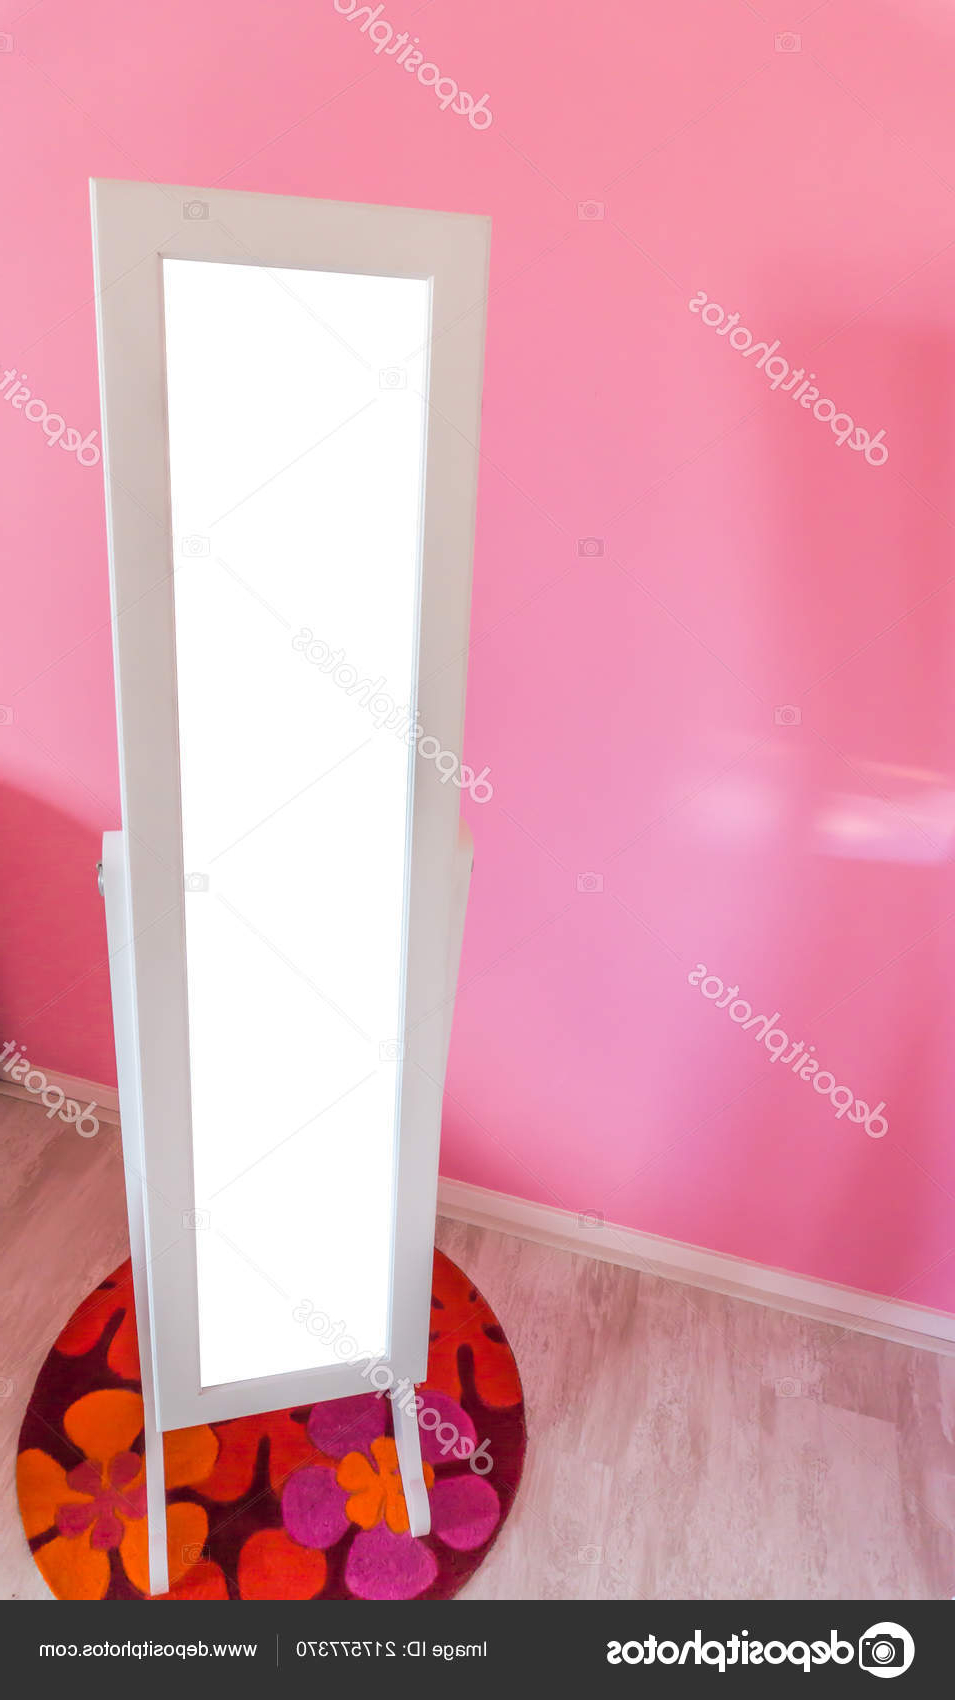 Empty Blank Mirror Standing Little Princess Girls Room Pink Wall With Recent Girls Pink Wall Mirrors (Gallery 10 of 20)